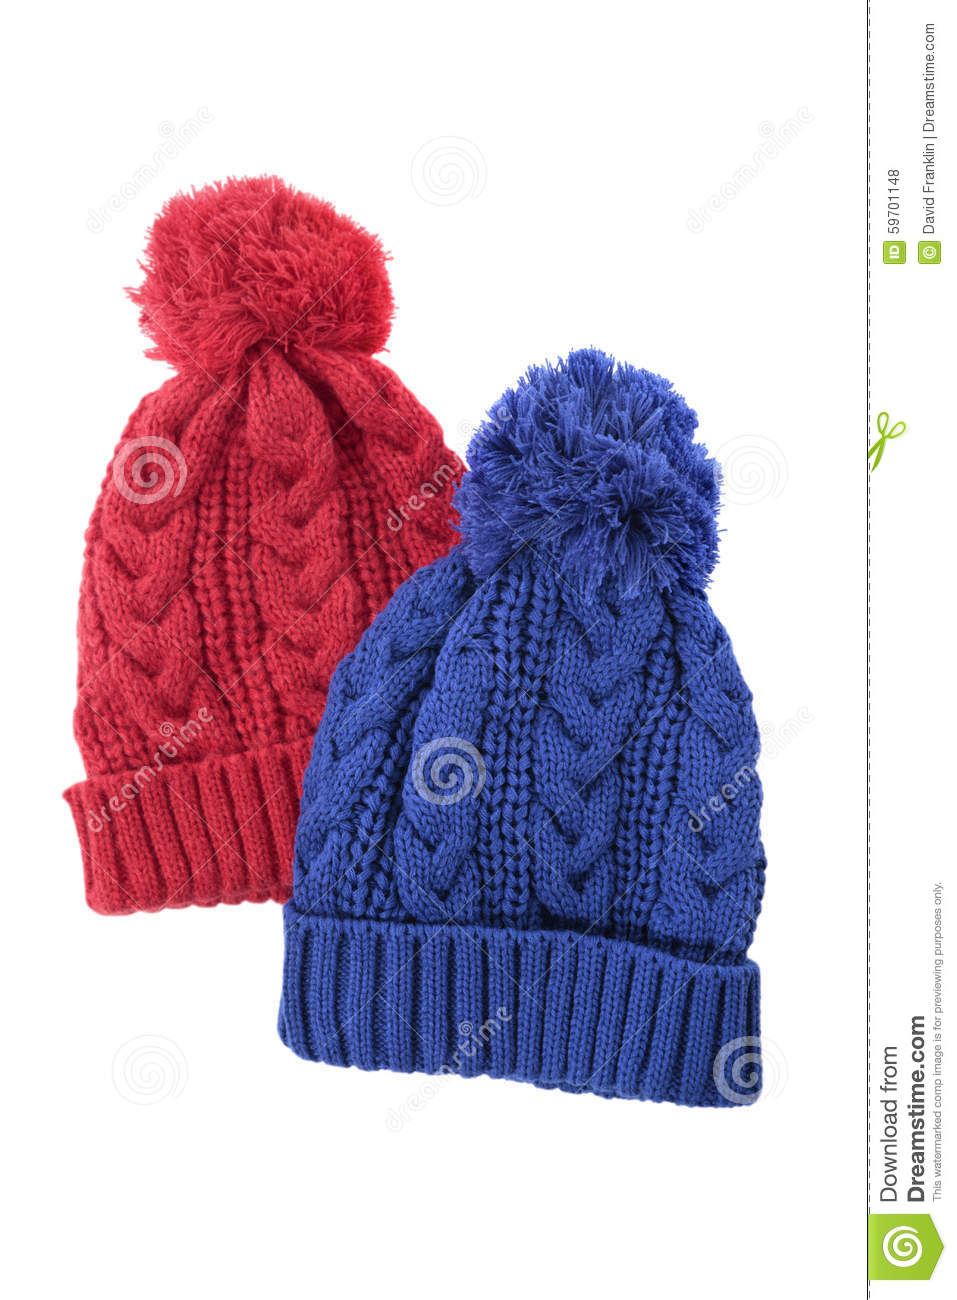 14558984faa Red and blue cable knit bobble hats or ski hats isolated on a white  background.